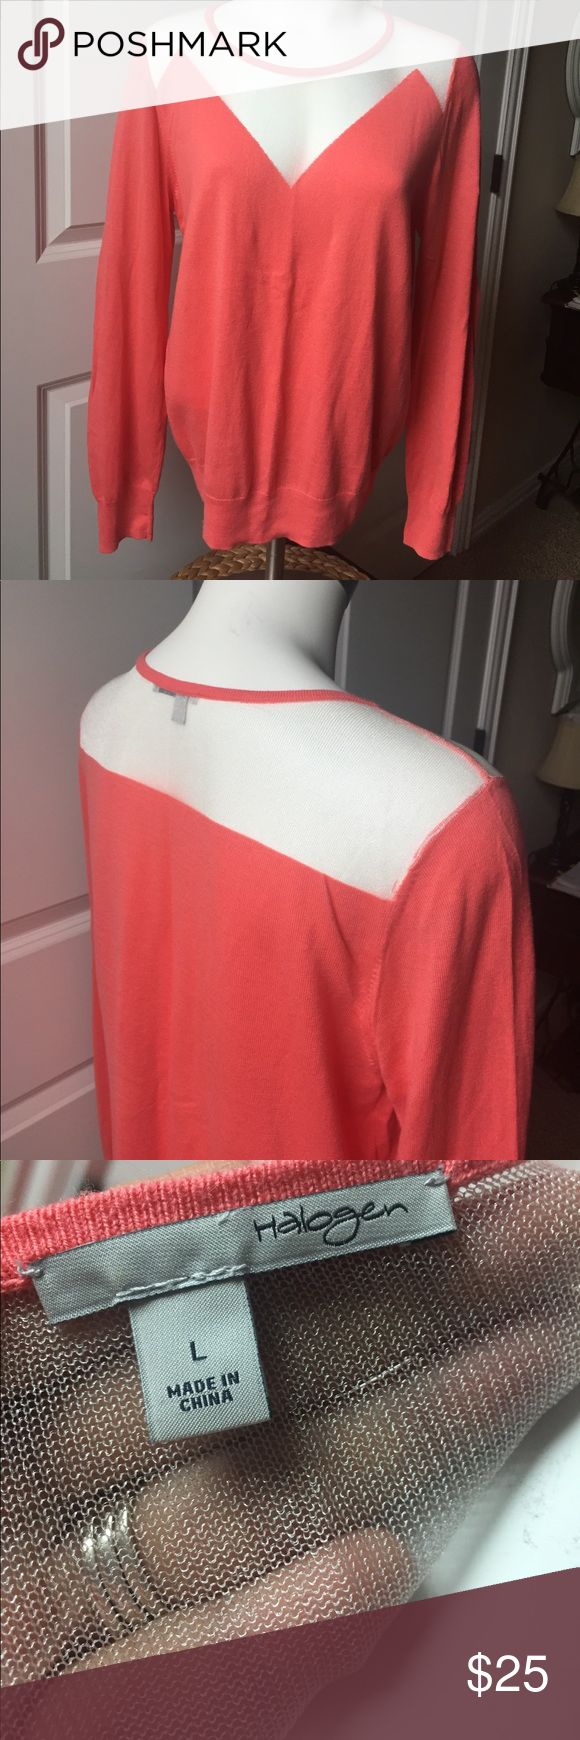 NWOT Nordstrom sweater Perfect for the holidays!  Flummery sheer section in a gorgeous coral color Halogen Sweaters